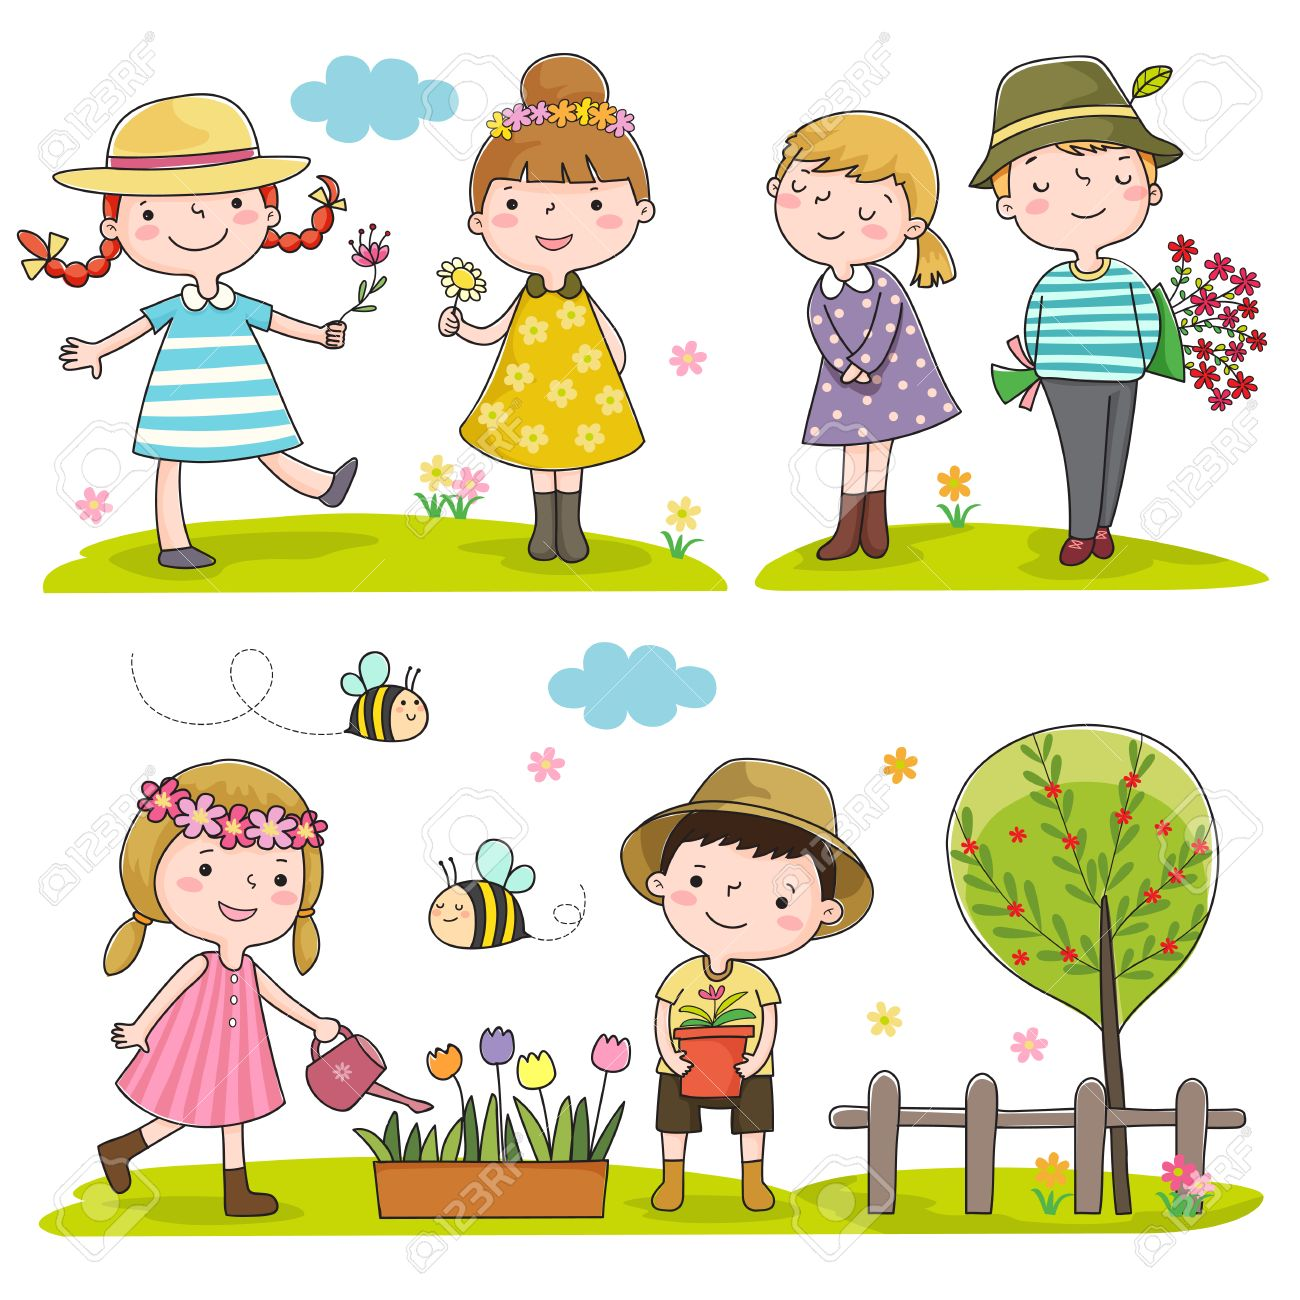 collection of happy kids outdoor in spring season royalty free rh 123rf com spring season background clipart spring season clipart images